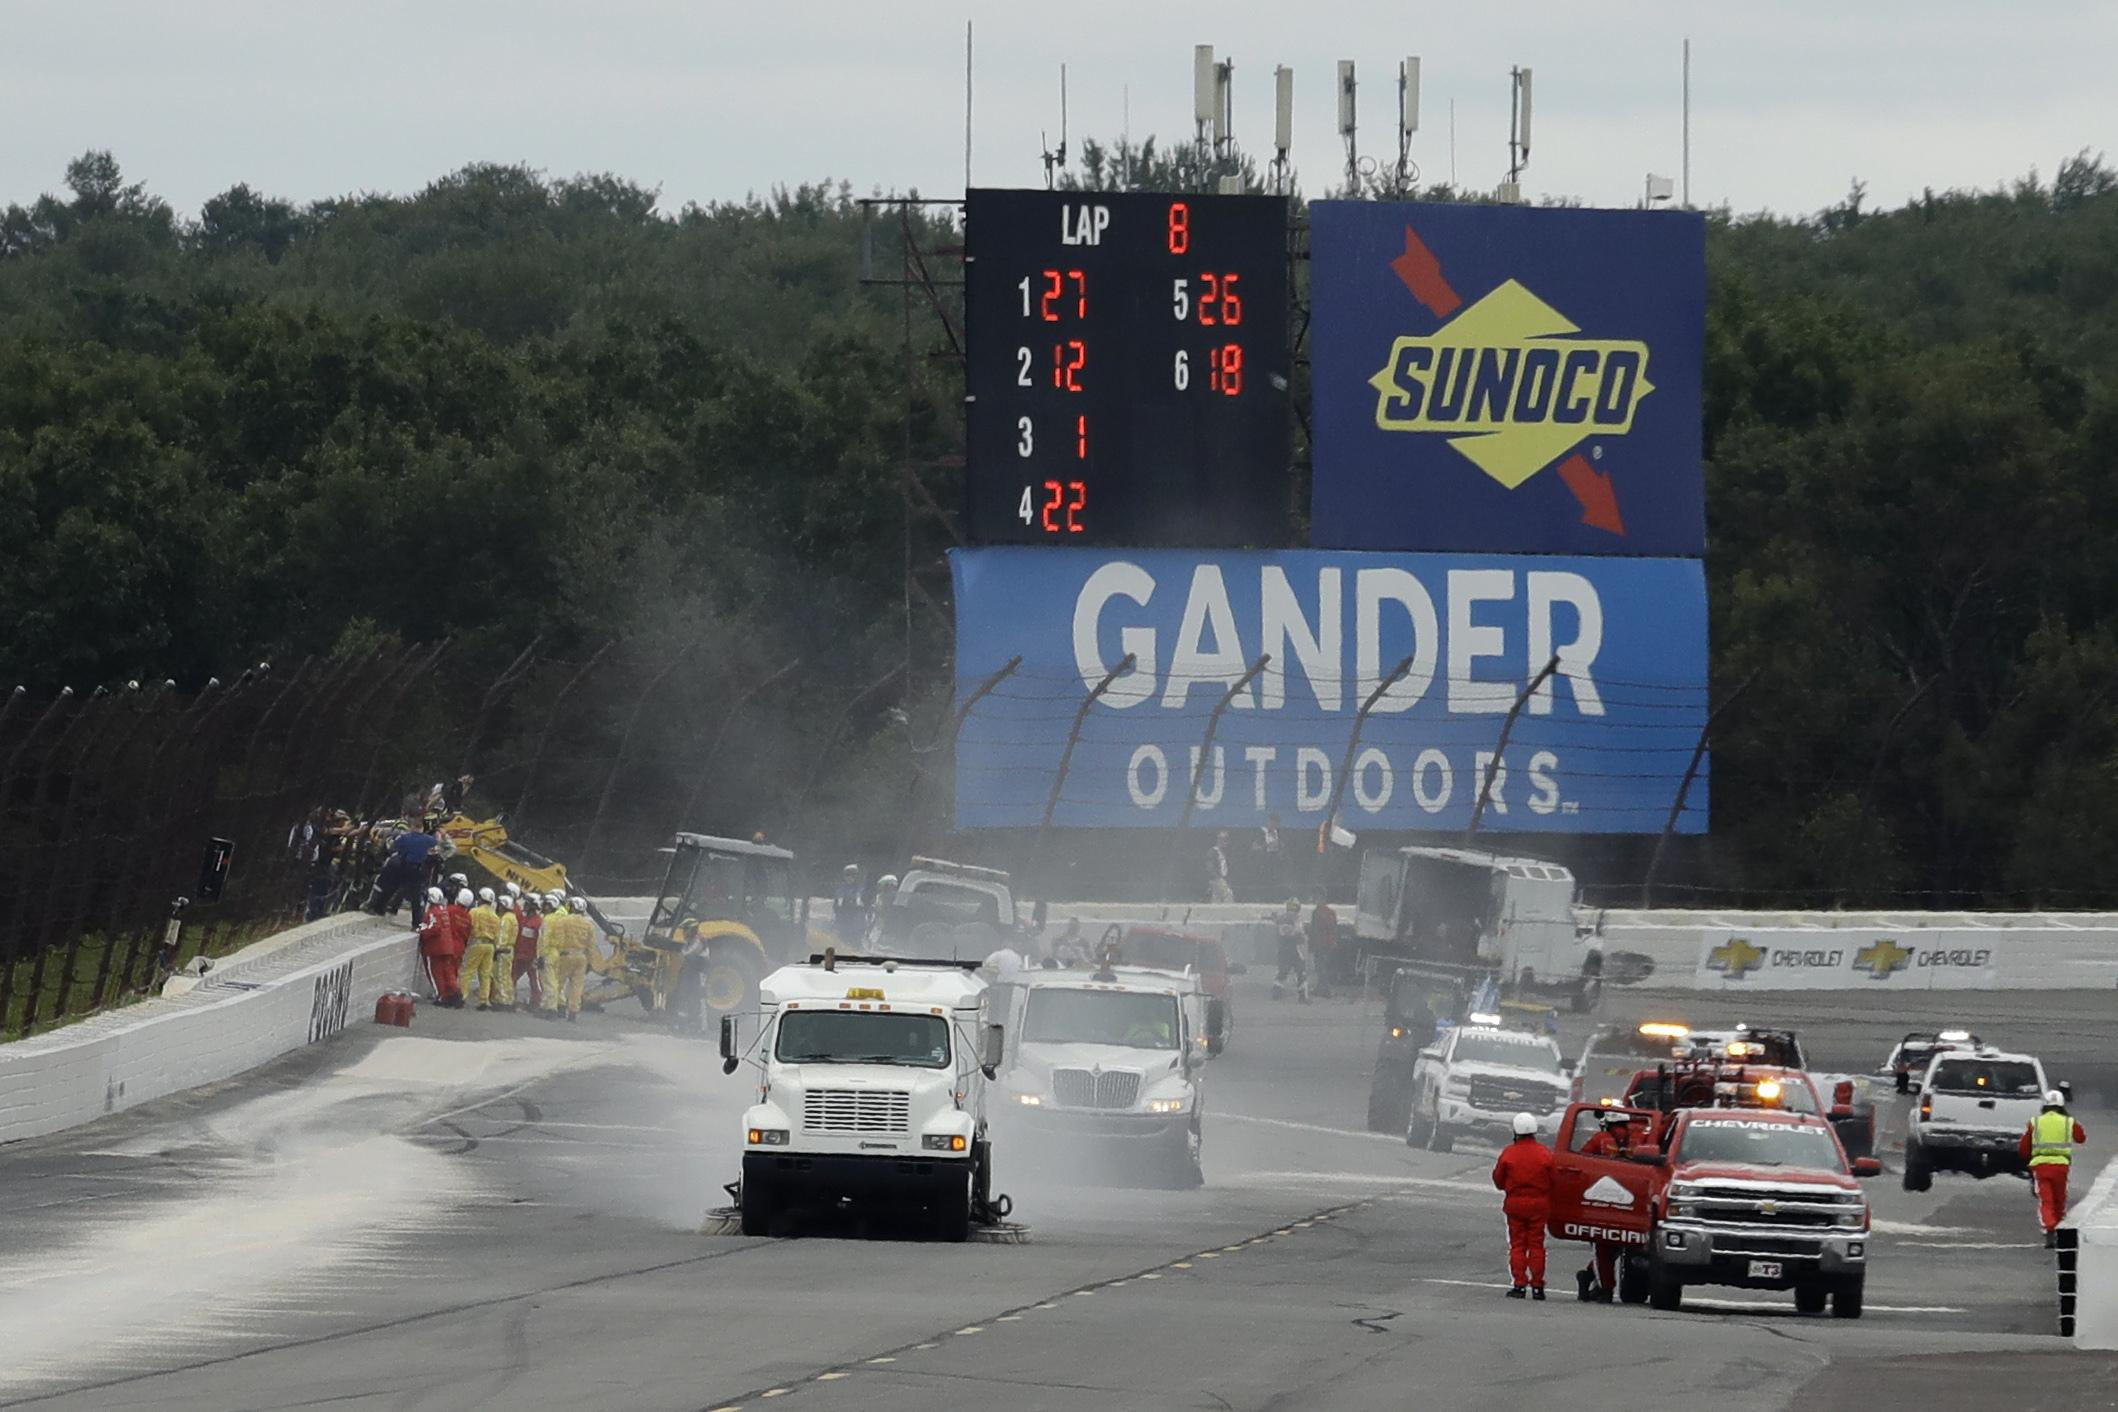 Track workers repair a section of fence after the crash